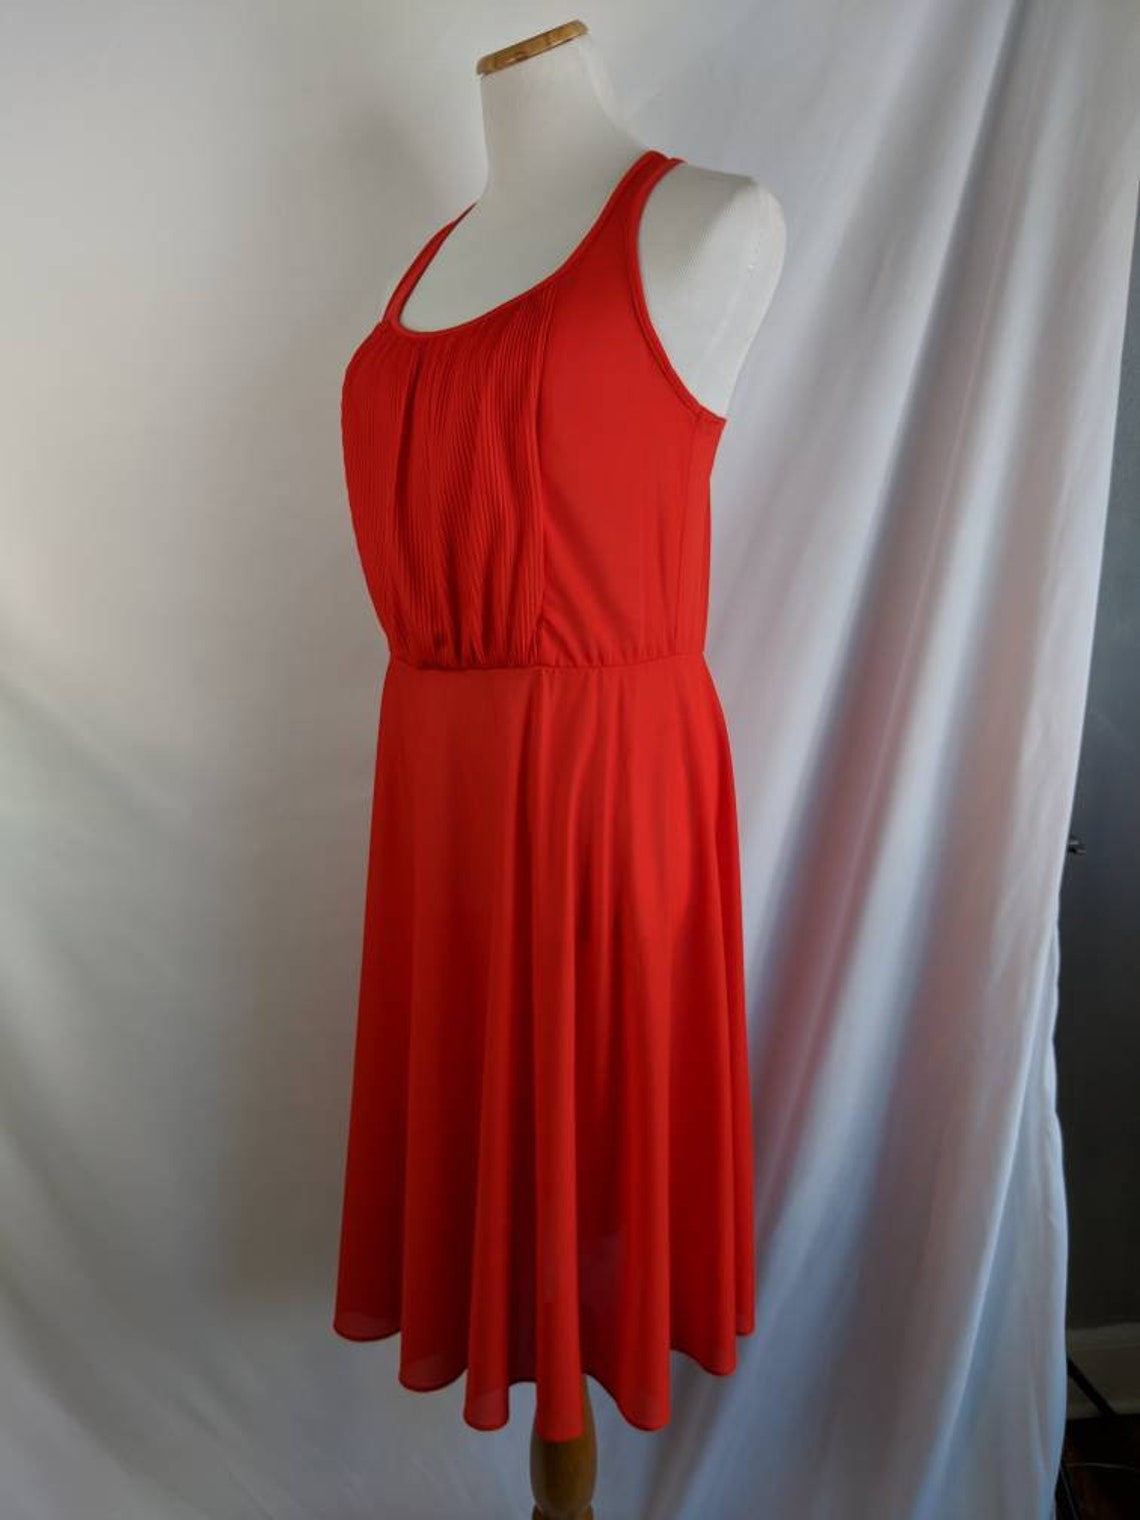 Adorable 2 Piece Set Red Sundress and Bolero by Jerell